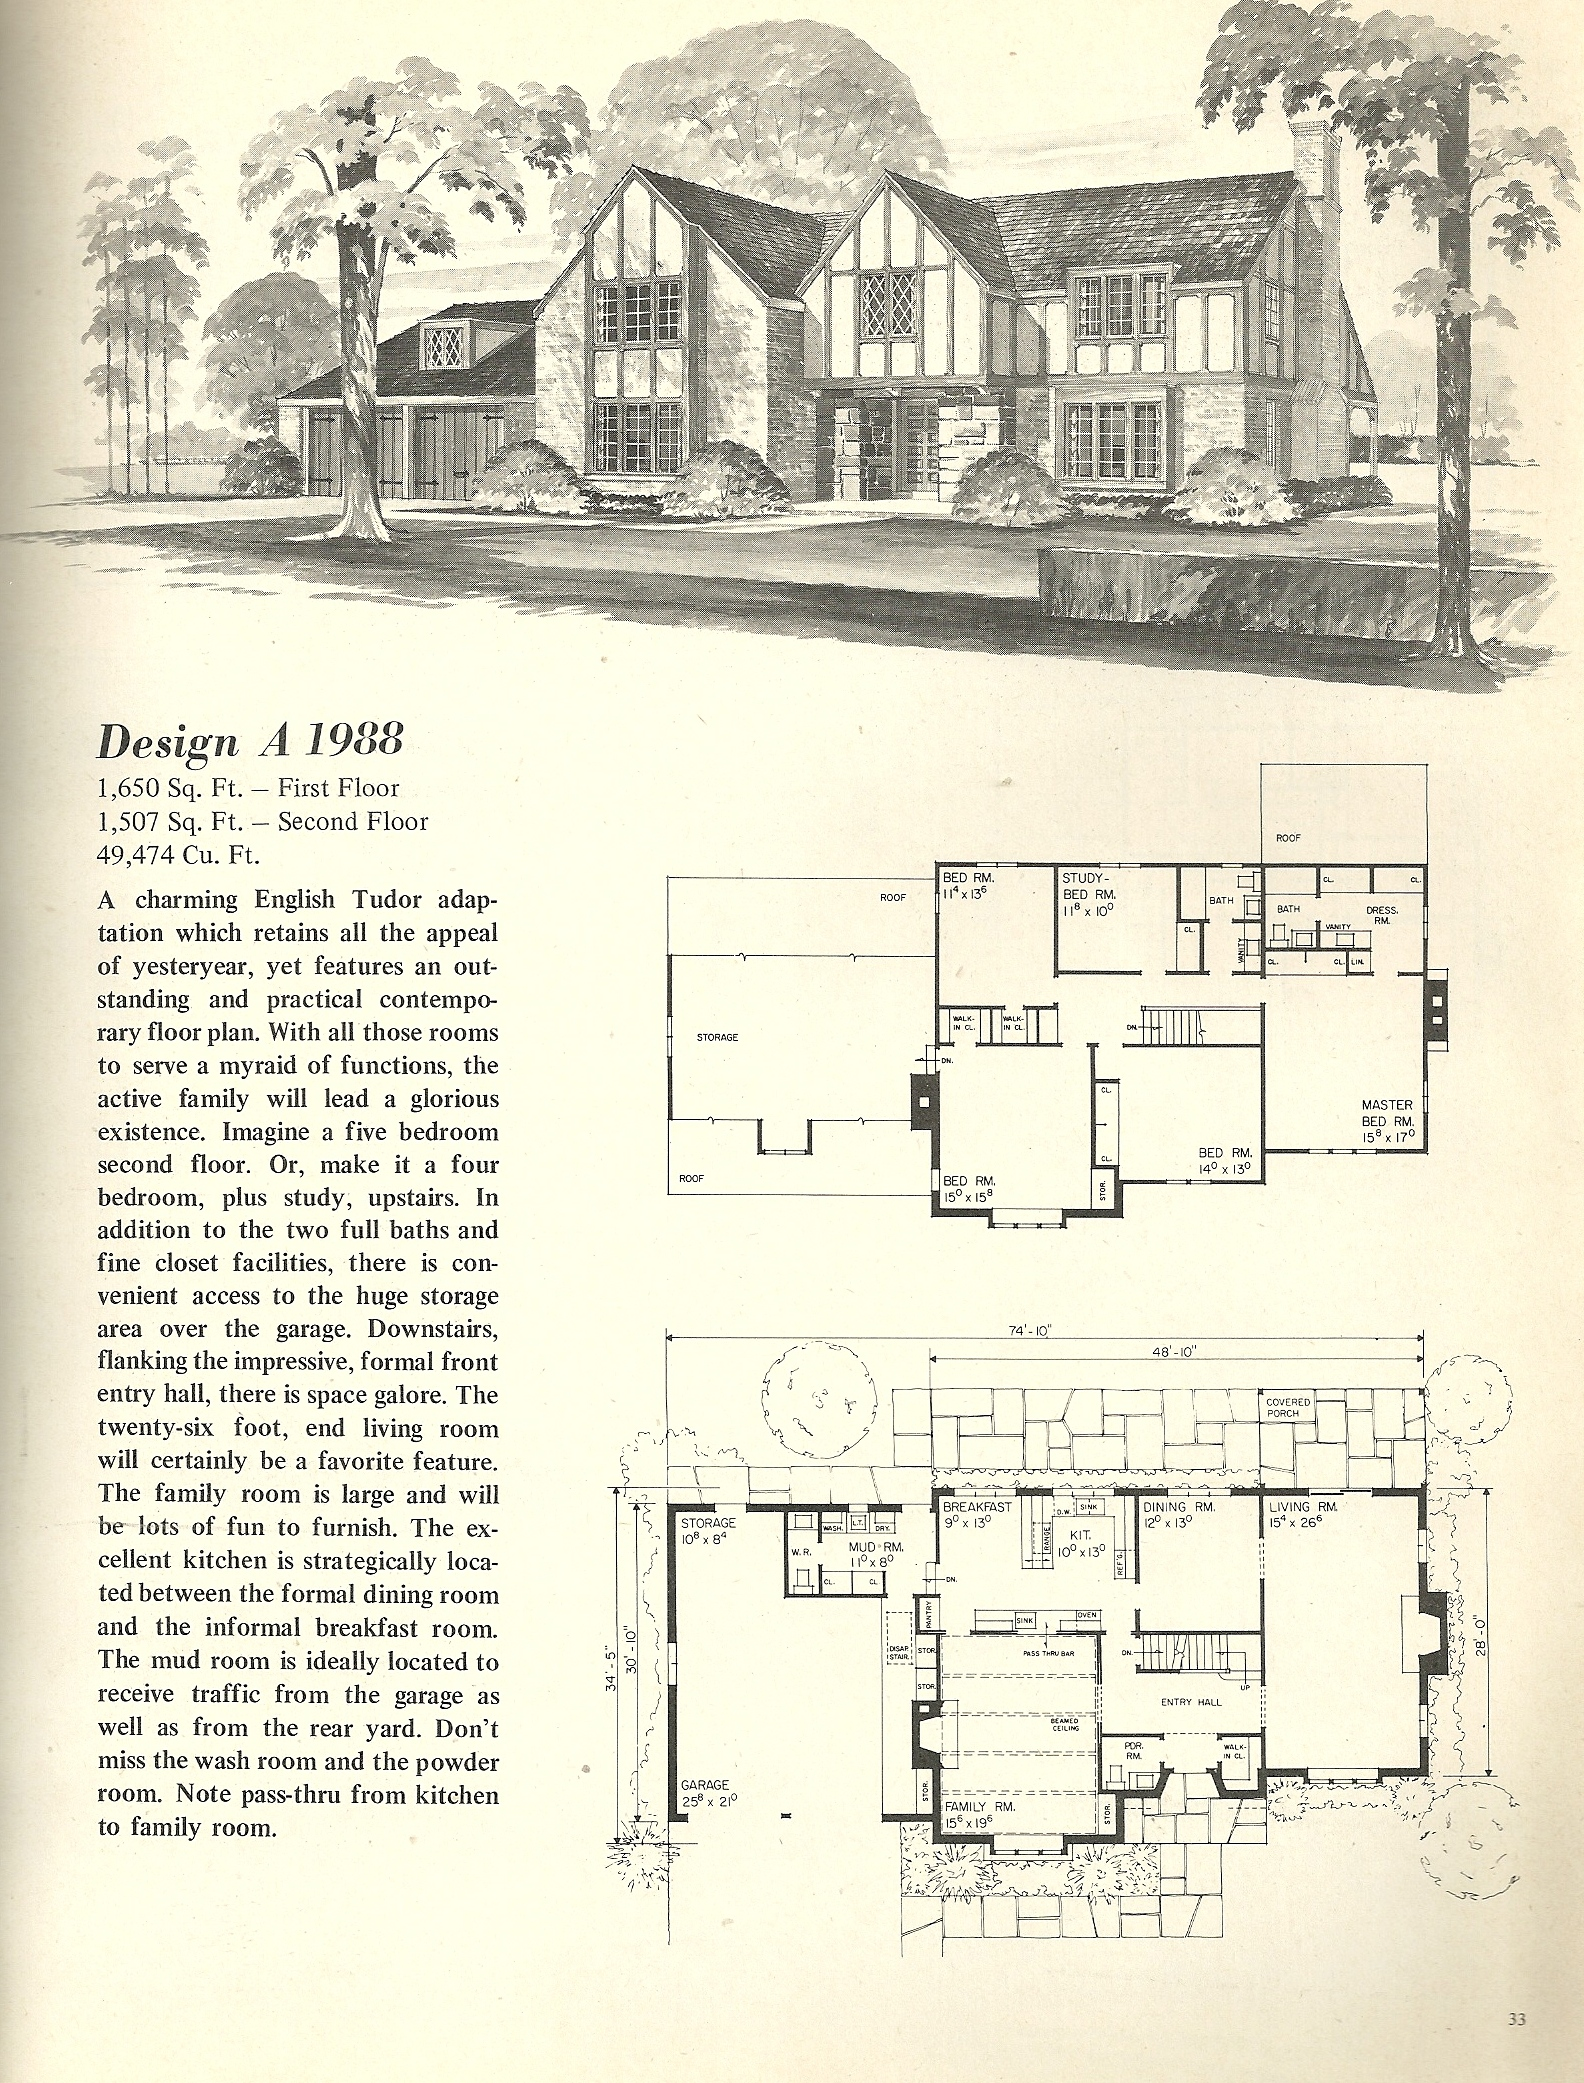 Vintage house plans 1988 antique alter ego for Vintage floor plans